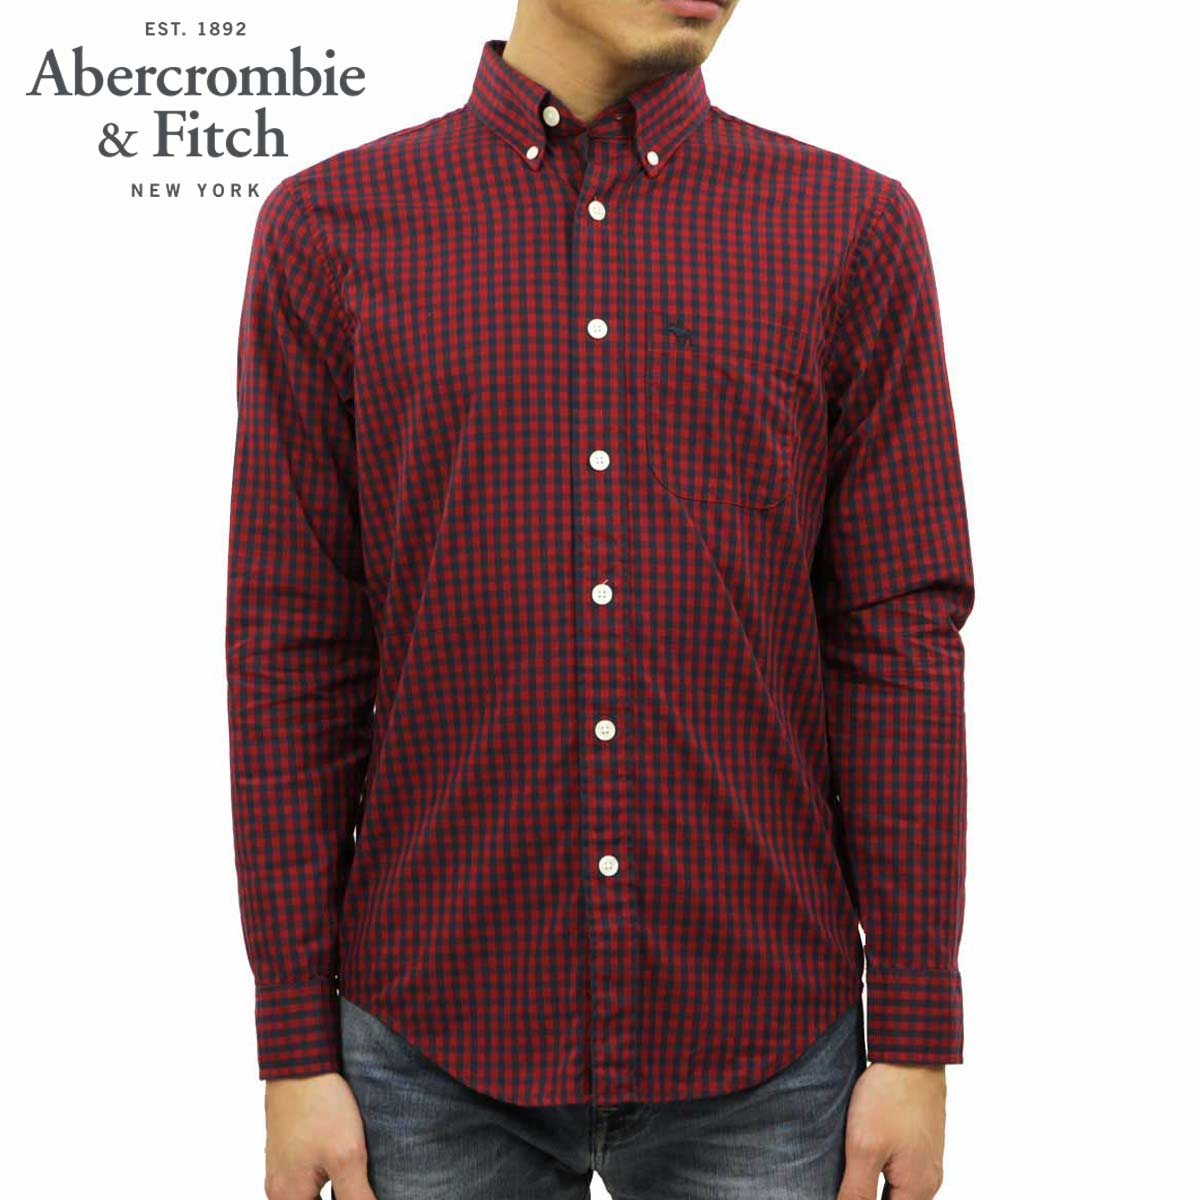 アバクロ Abercrombie&Fitch 正規品 メンズ 長袖シャツ Patterned Cotton Poplin Shirt 125-168-2367-508 D00S20